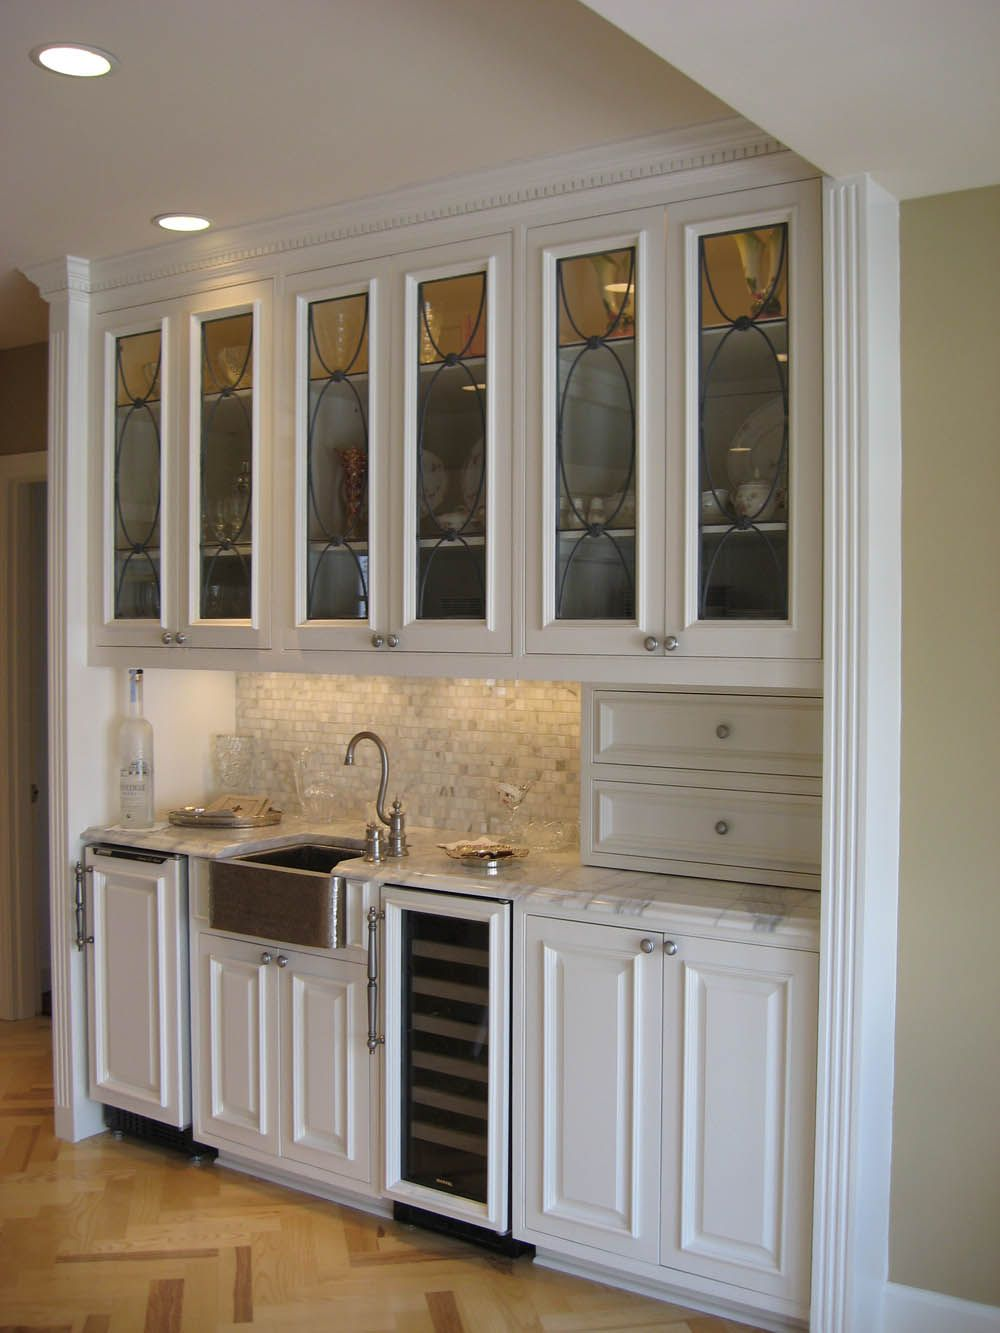 Custom Wet Bar I Love The Baby Size Farmhouse Sink And Glass Detailing On